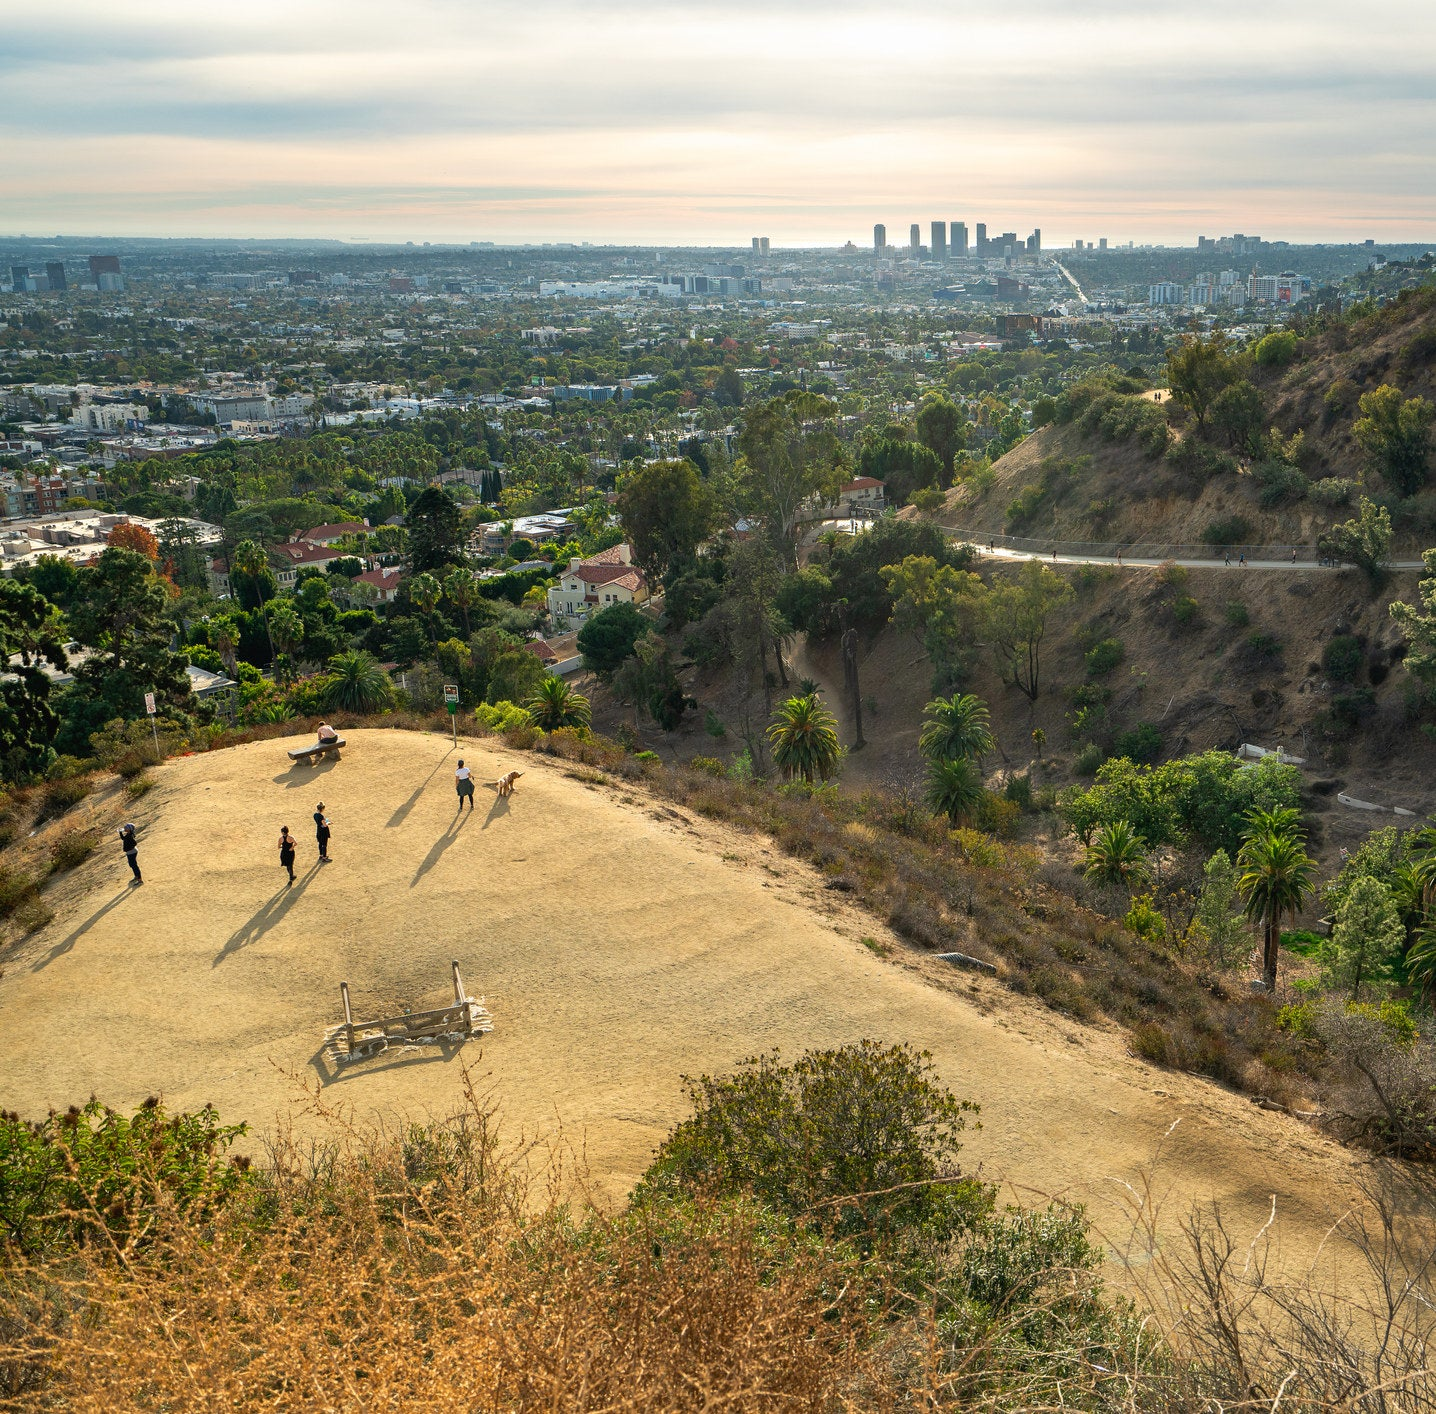 aerial shot of a hiking trail leading to the top of a hill, surrounded by lush trees and overlooking the LA city skyline